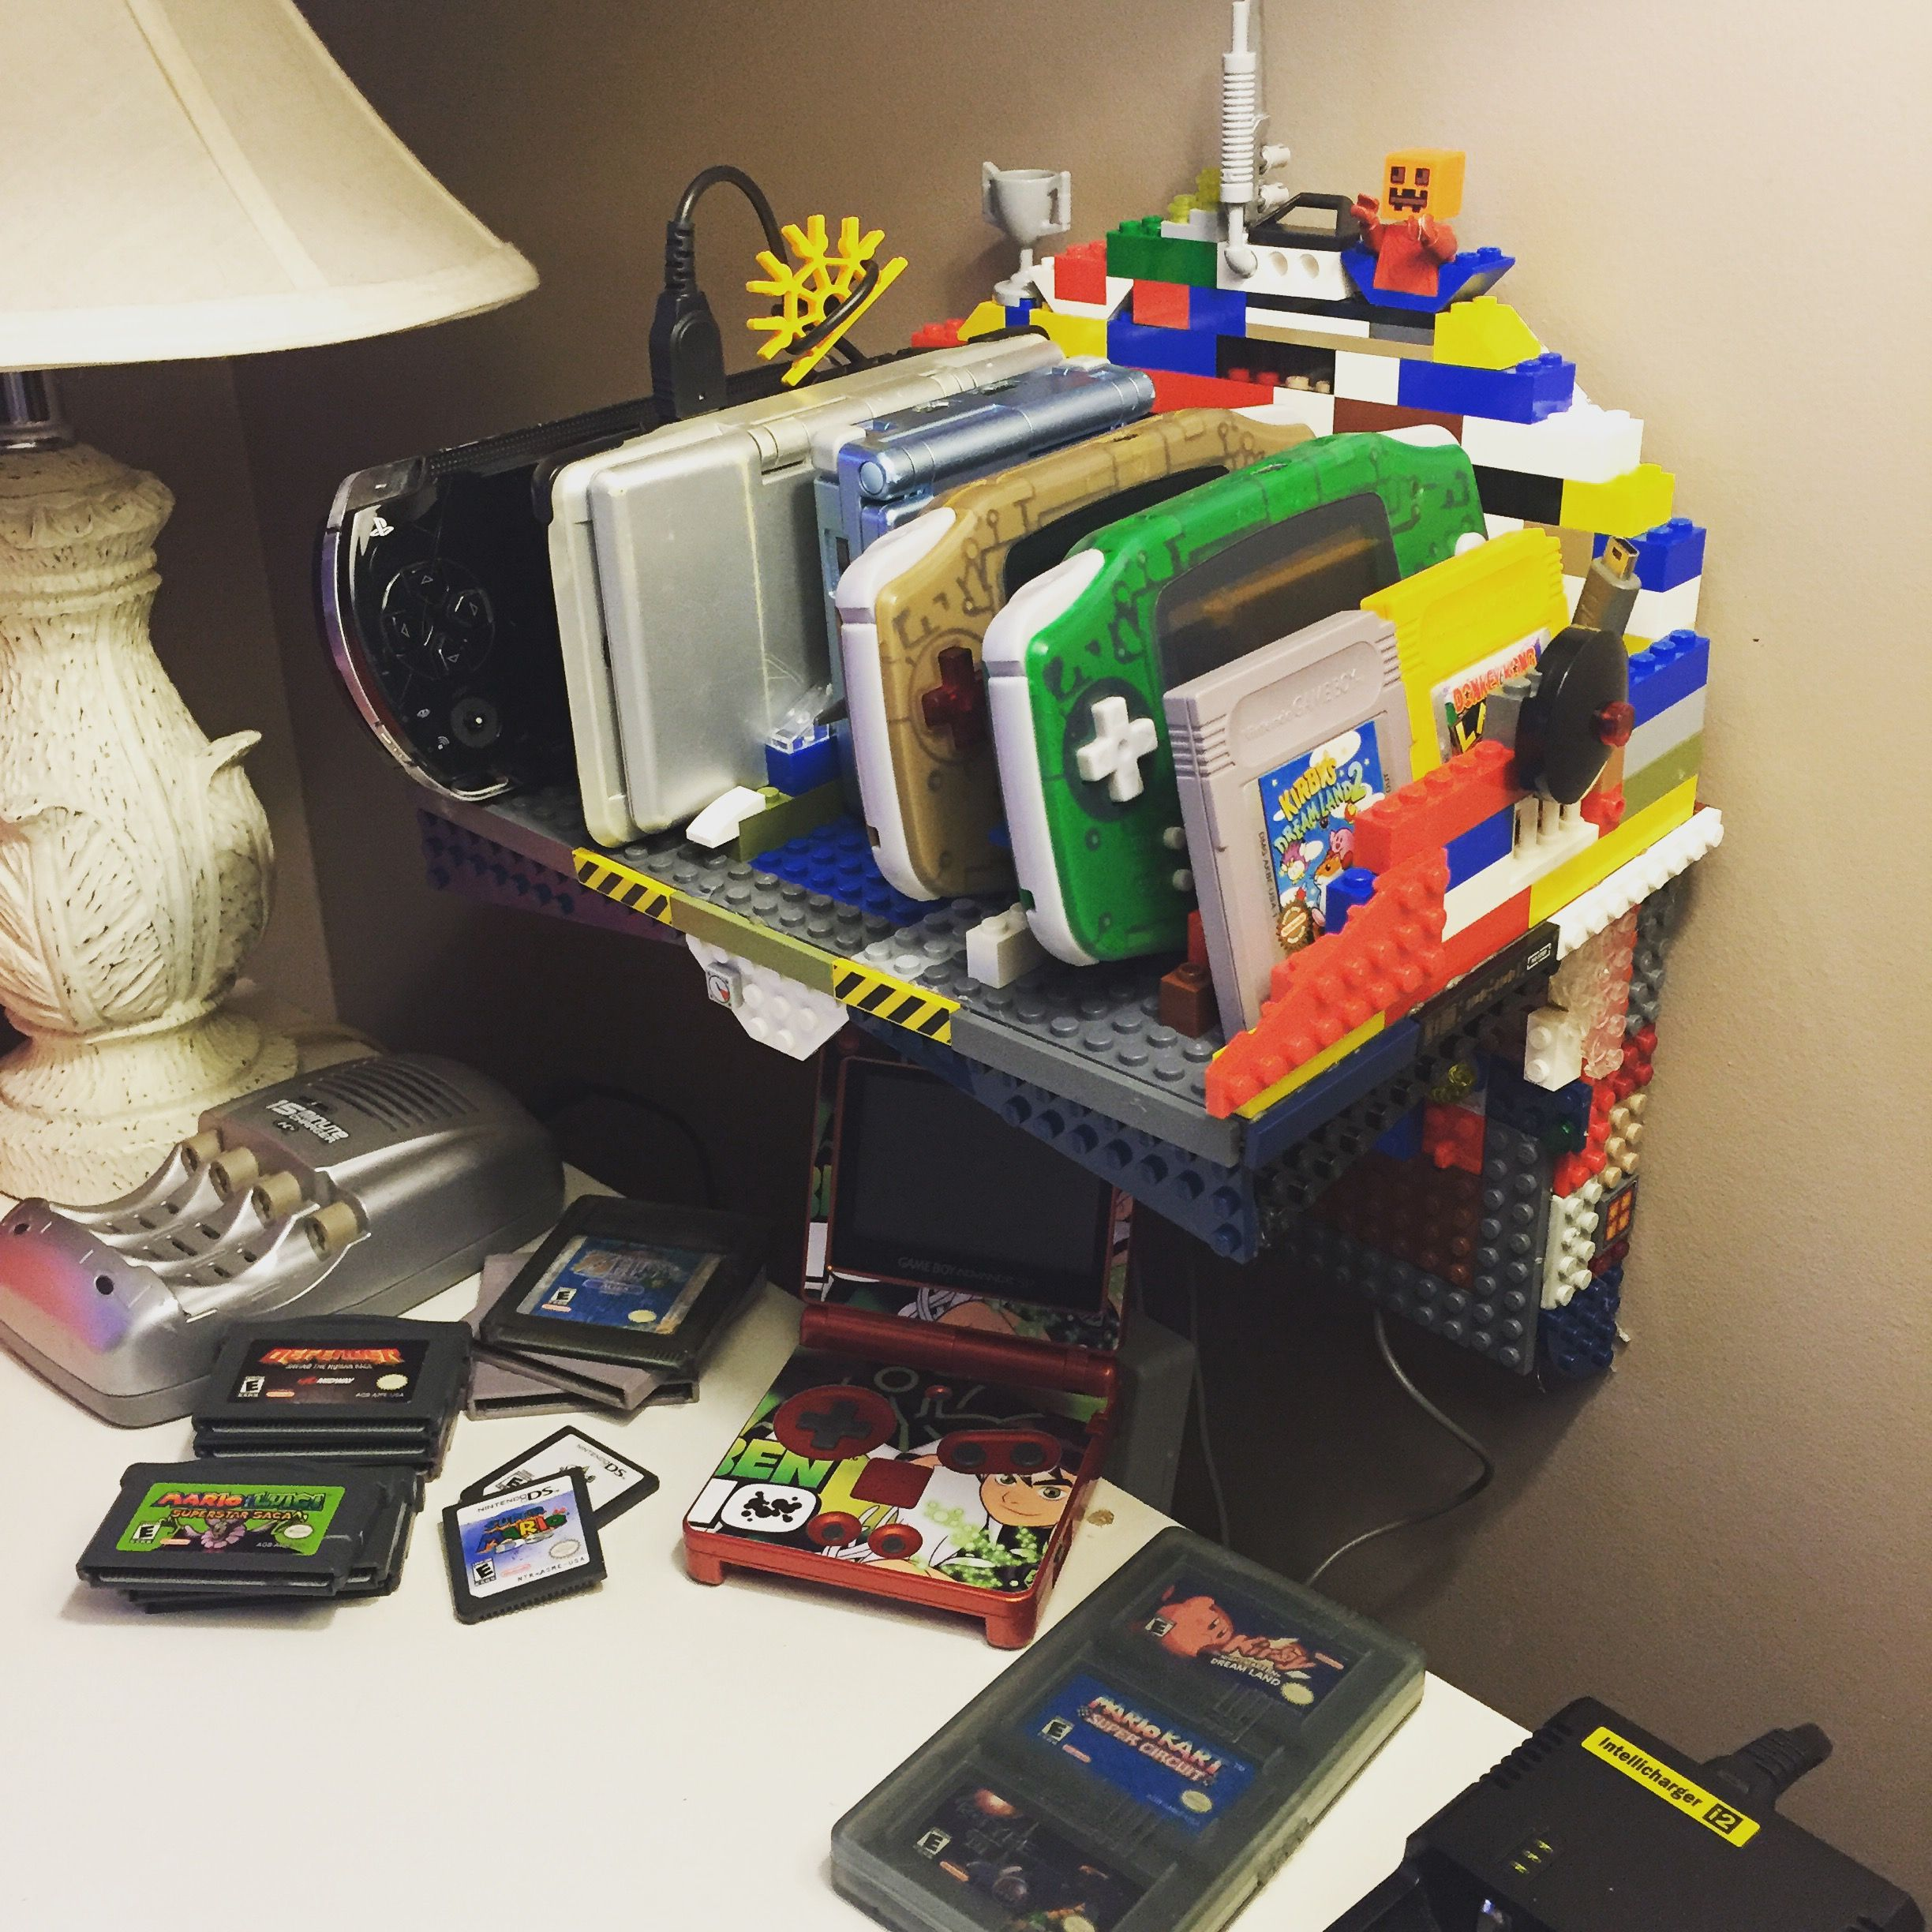 Made A Charging Station Out Of Legos For My Handhelds